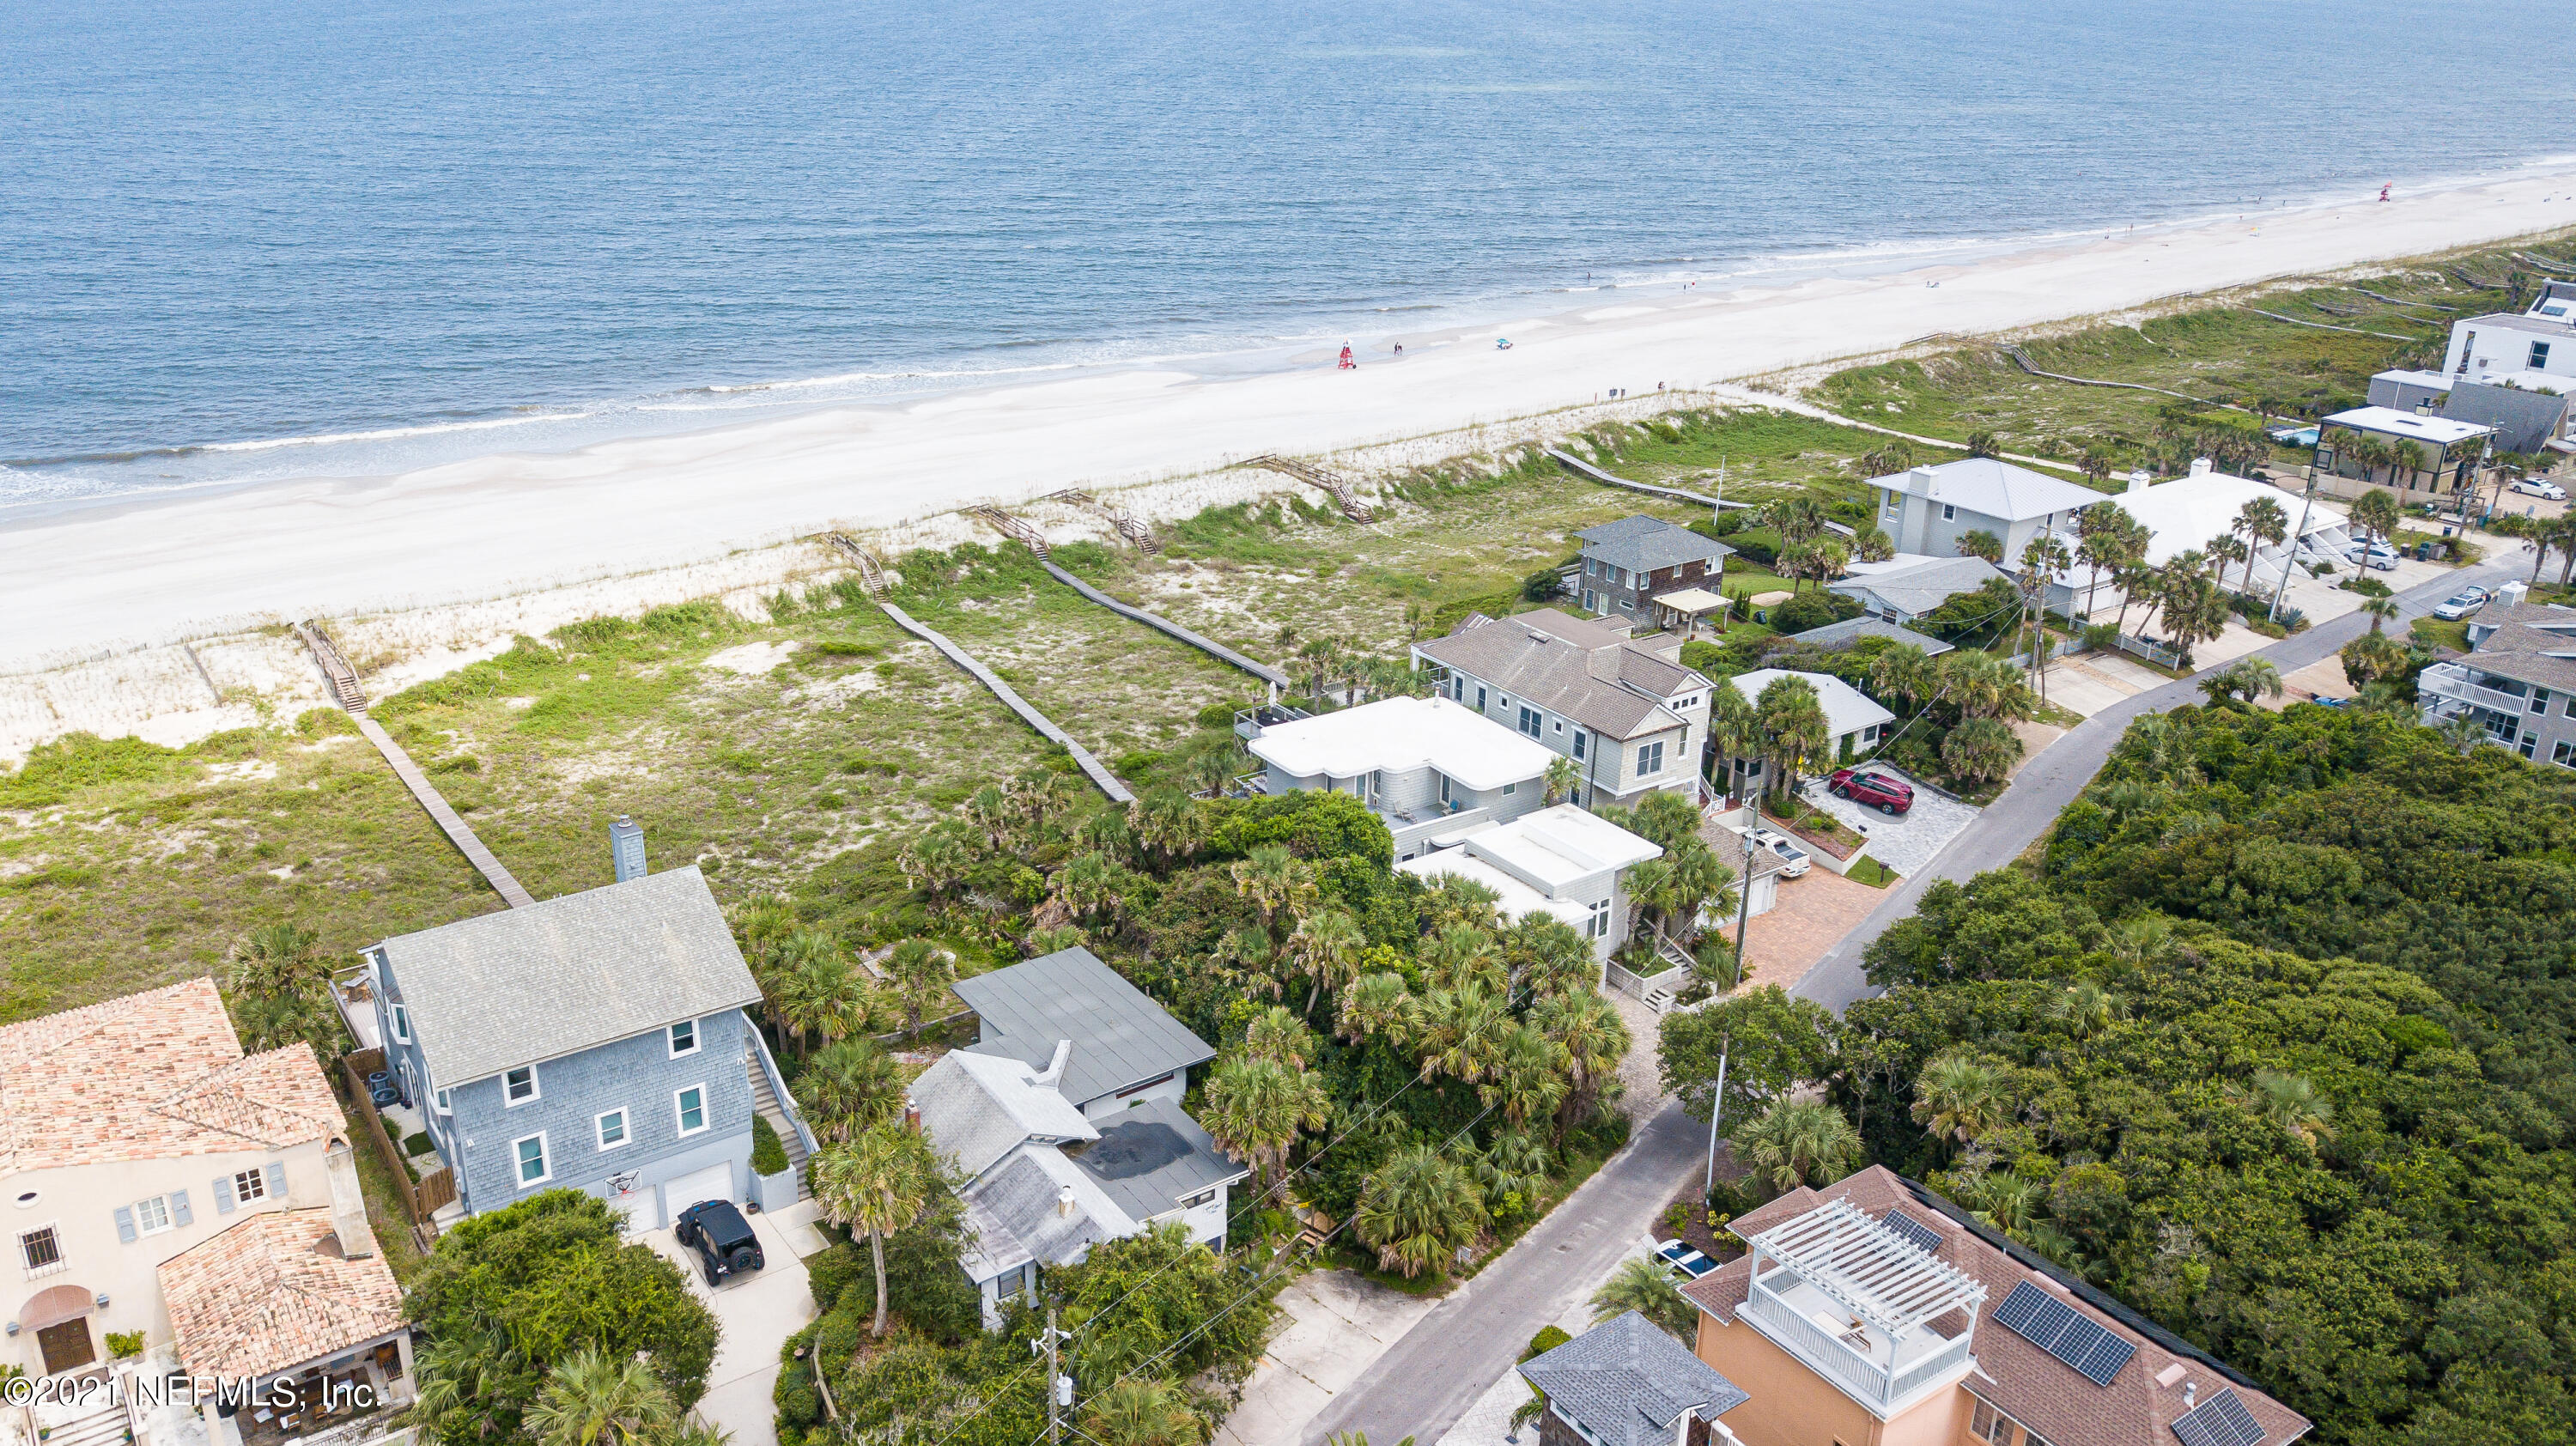 Welcome to the Atlantic Beach Lifestyle!  Enjoy the ocean breeze from your own backyard. This property features 100 feet of ocean front views ''off the beaten path'' from the lively Atlantic Beach. Enjoy the privacy of this hard-to-find home while still enjoying the luxuries the town has to offer. It is only a 10 minute bike ride to fantastic restaurants, music, coffee shops, shopping, and more! With this lot, you have the luxury of enjoying bike rides on the beach, serene views, short drives to the Atlantic Beach country club, and a relaxed lifestyle that can't be beat. Live like you're on vacation every day, and build your dream home on this prime lot. Please do not visit the property without a Realtor. If you would like to see a video of the property, please contact me.